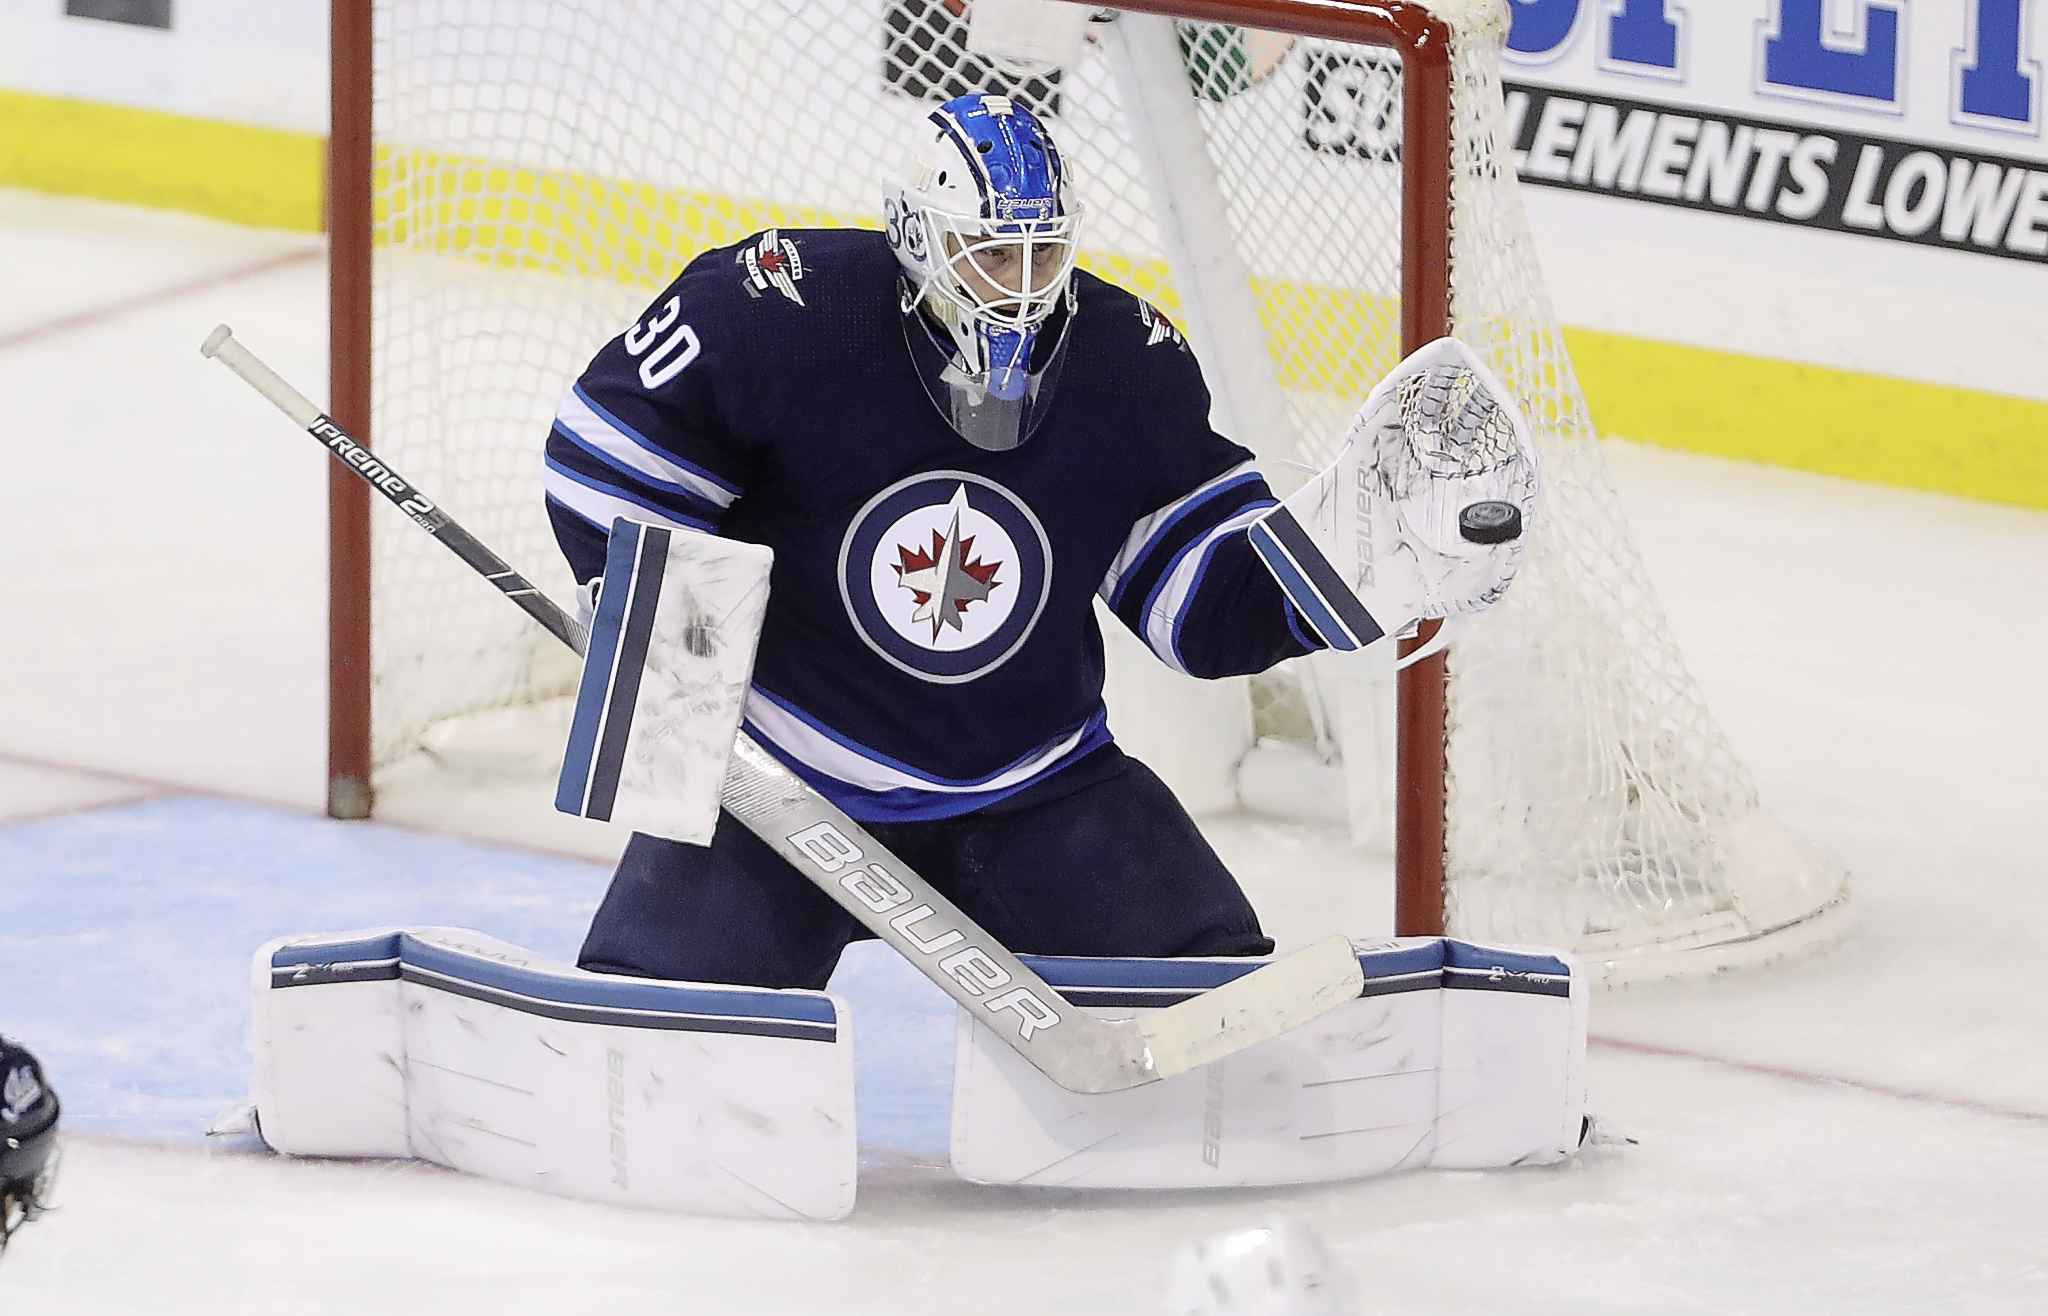 Winnipeg Jets goaltender Laurent Brossoit came to Winnipeg in the off-season as a free agent to try and get his career back on course after a few less-than-stellar seasons in Edmonton.